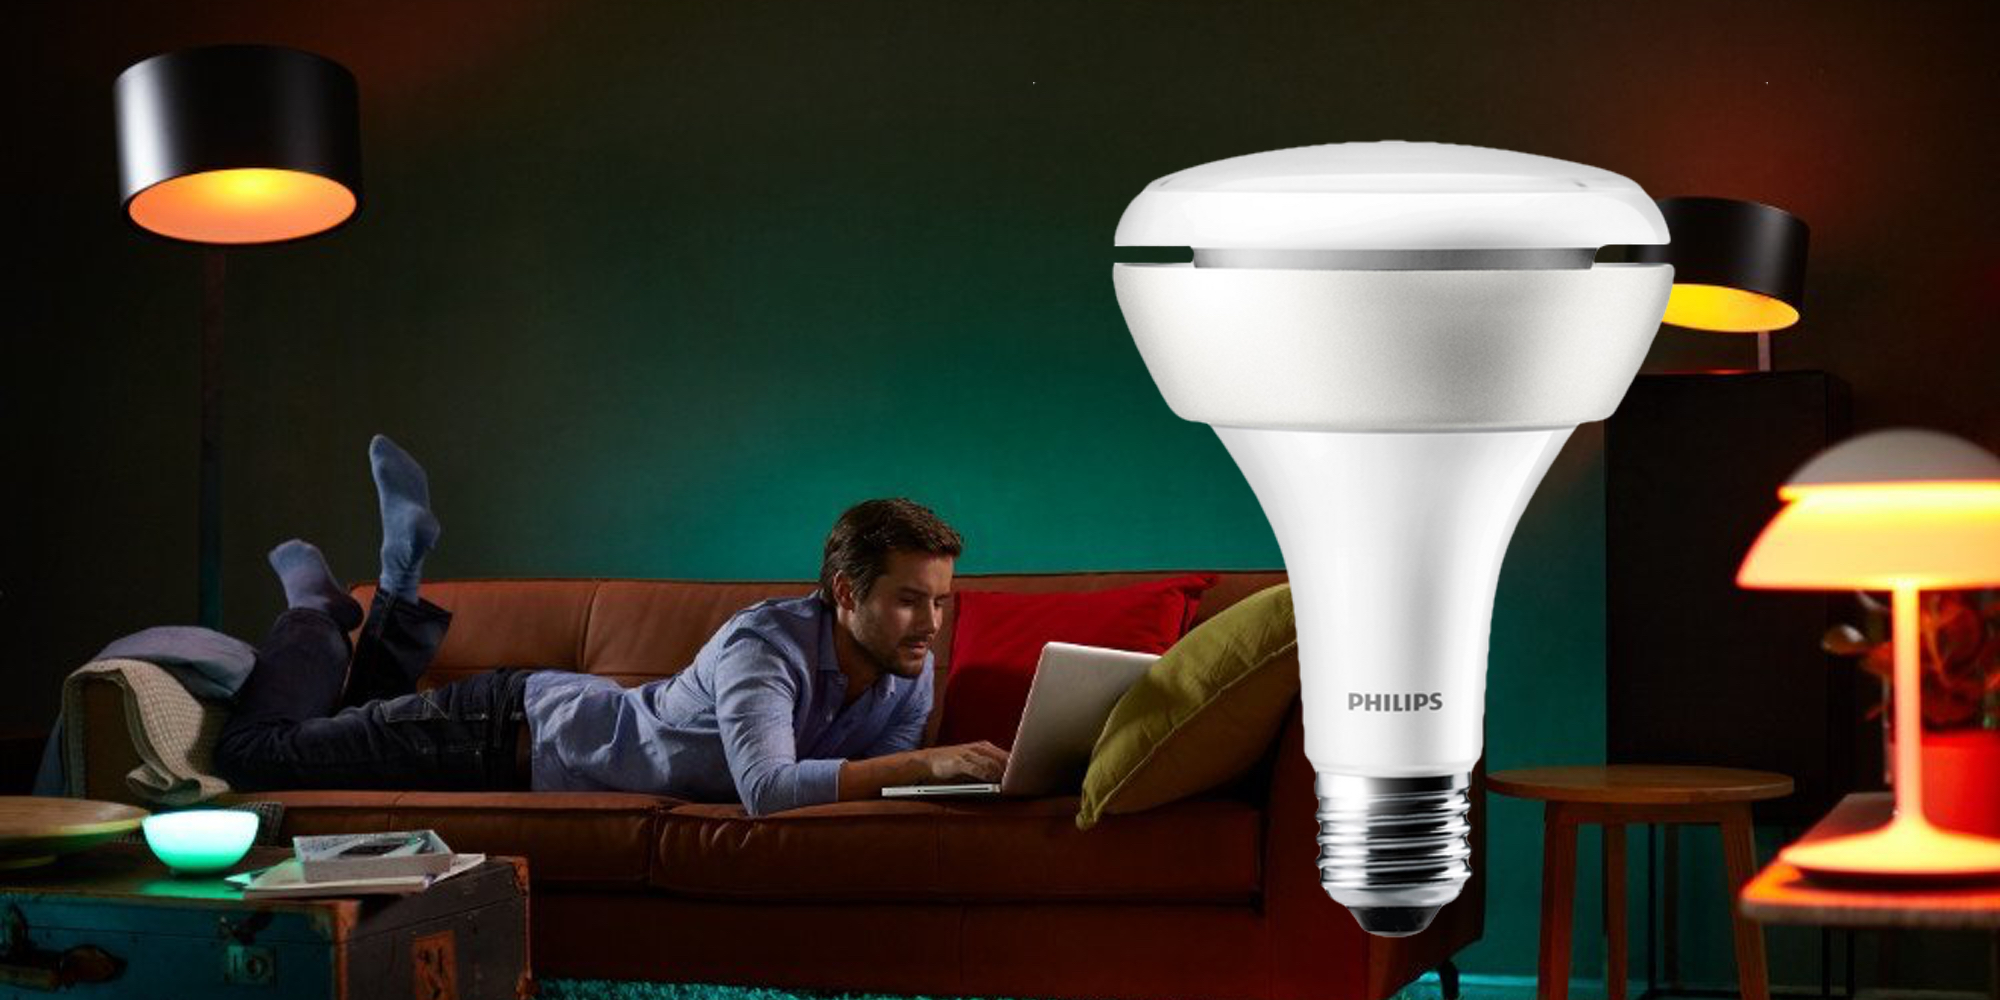 Philips Hue Br30 Philips Hue White And Color Br30 60w Flood Light Drops To 45